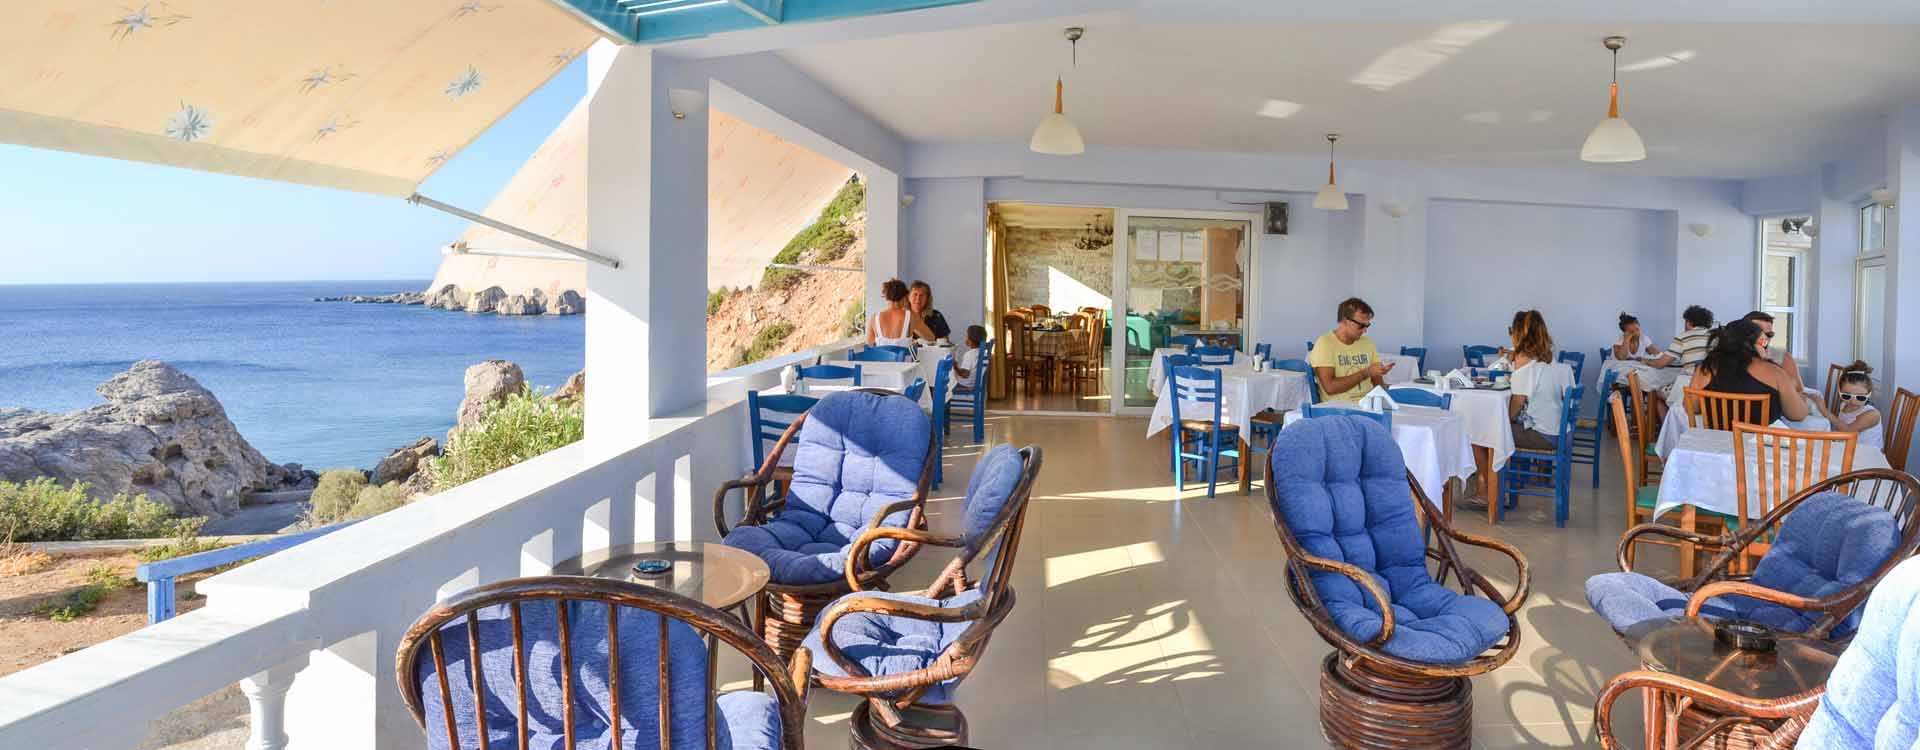 Enjoy breakfast, lunch or dinner in an idyllic landscape of Karpathos island, Greece